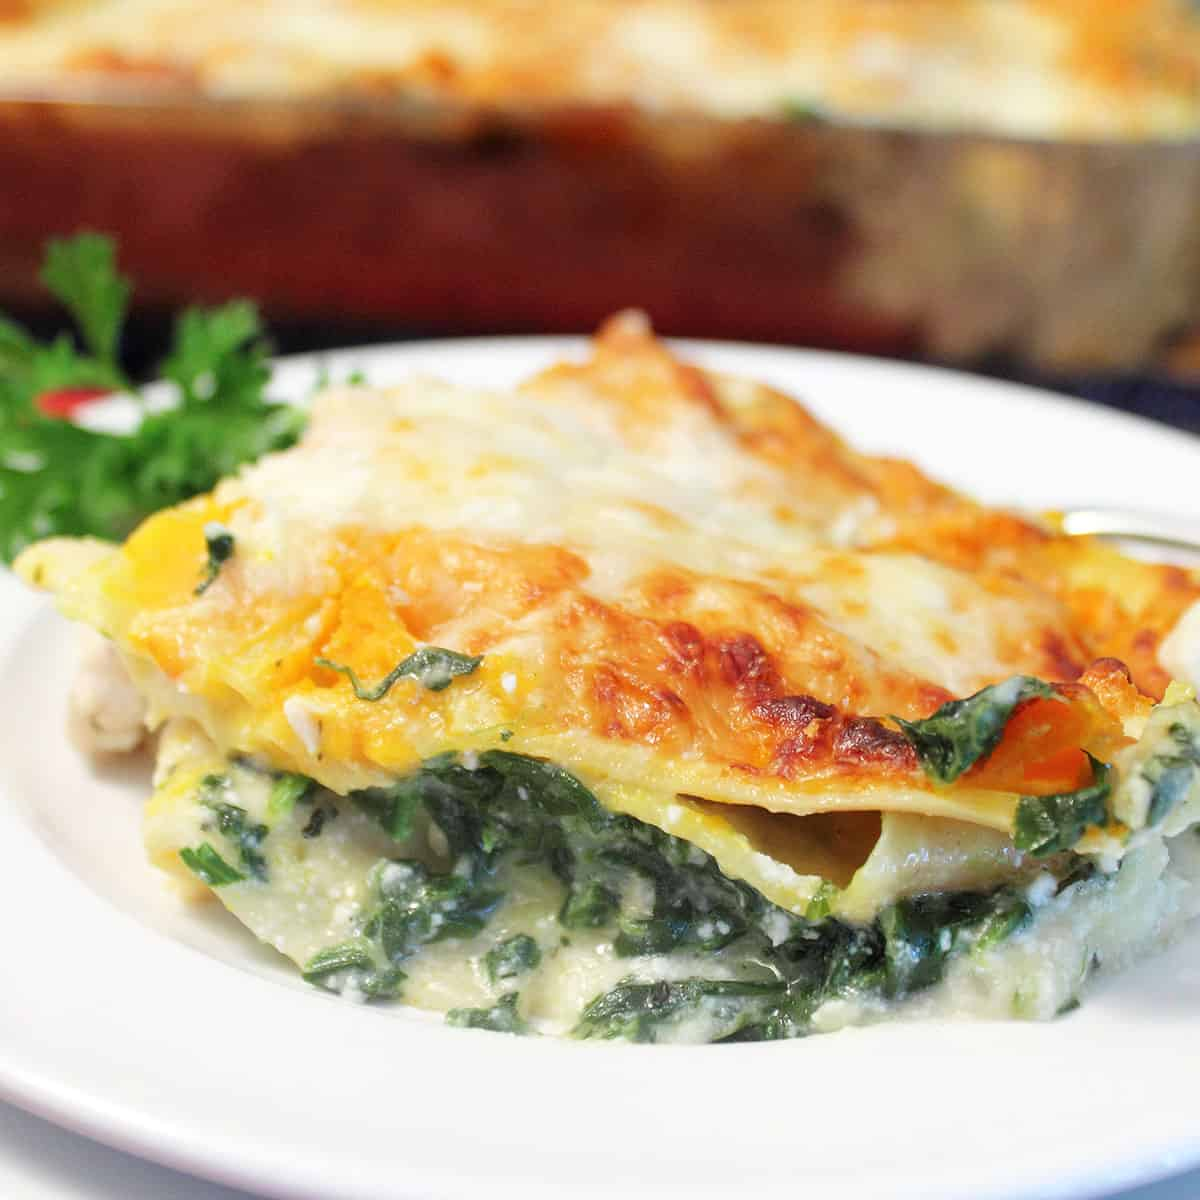 Slice of chicken lasagna on white plate showing spinach and creamy cheese sauce.